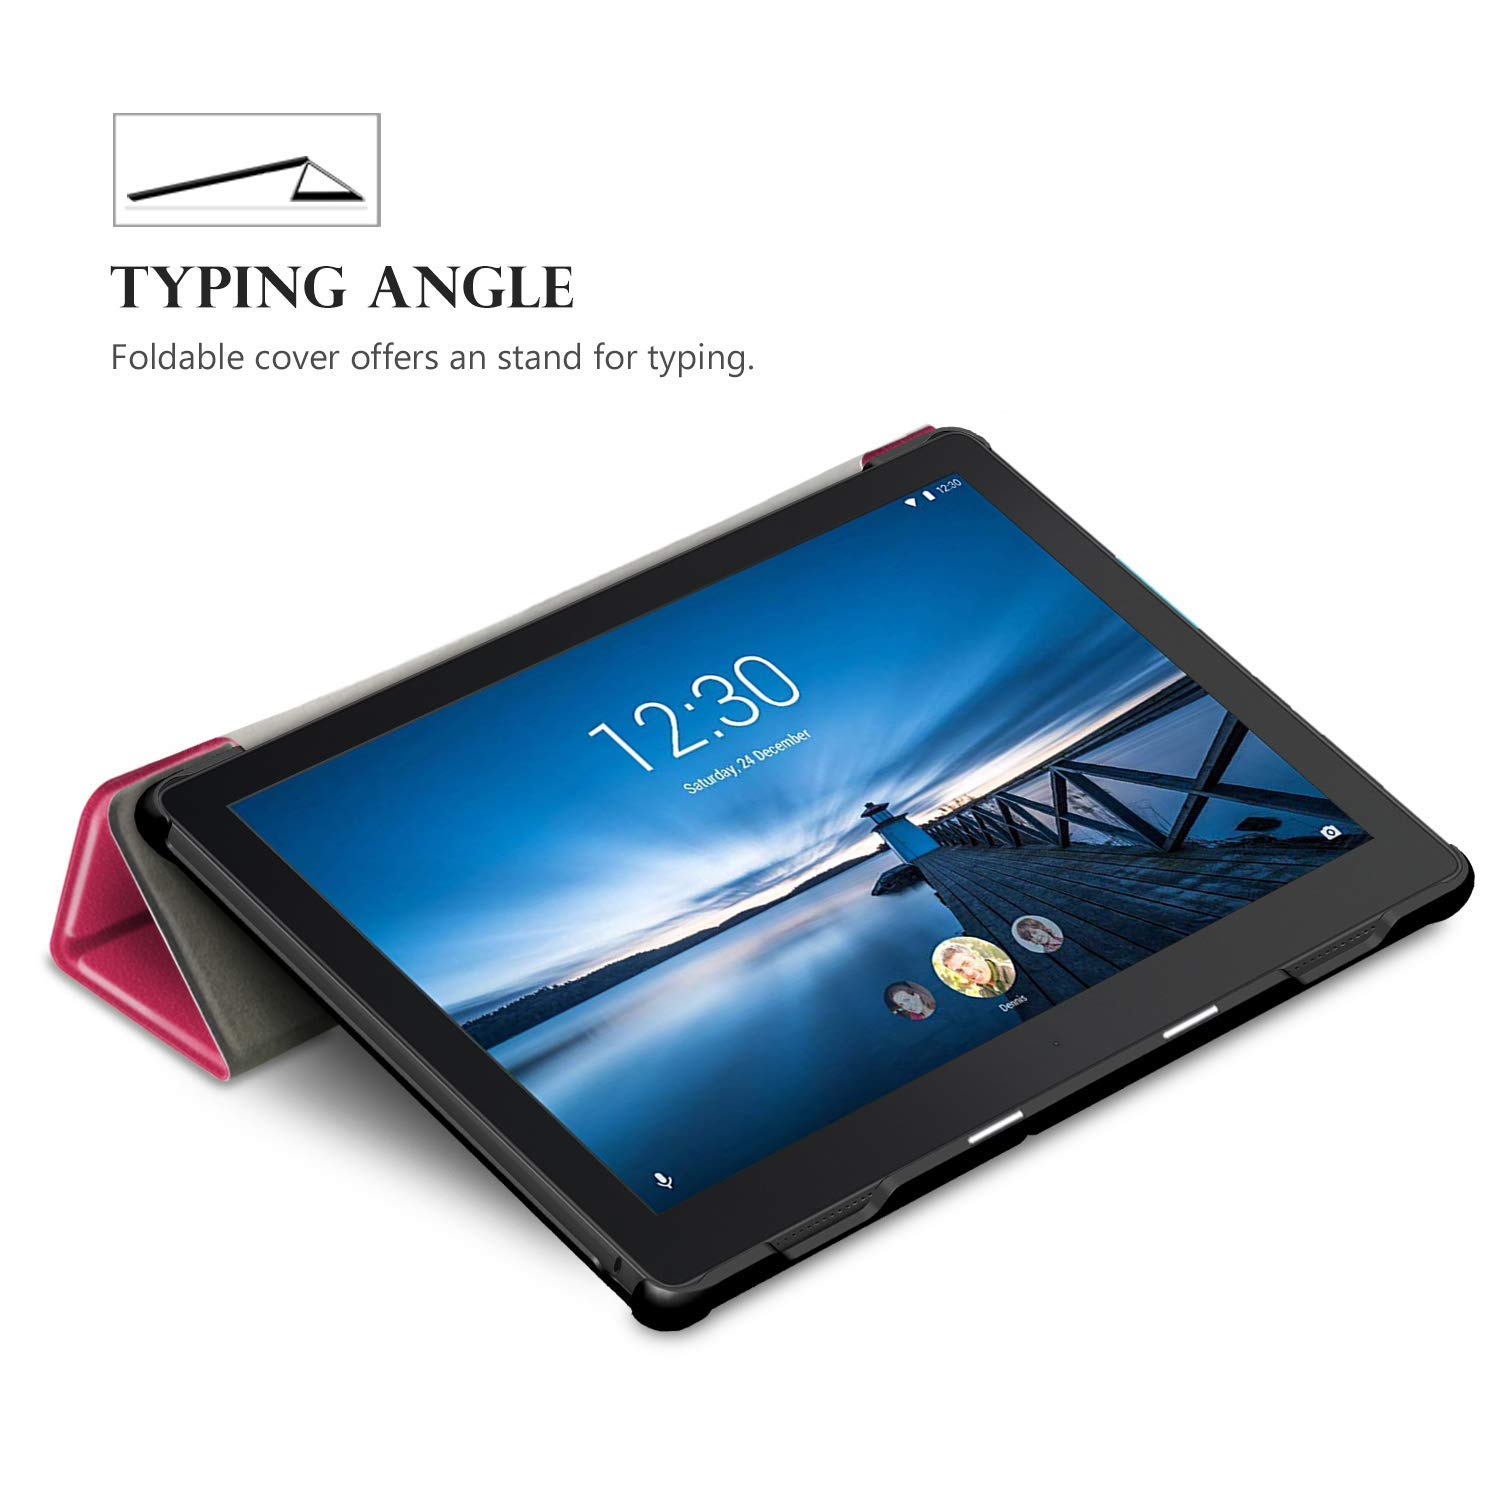 Case With Keyboard Black Fast Delivery Free Screen Protector And Stylus Pen Included Starter Kit Lenovo Tab E10 TB-X104F Tablet Smart Case Available Prime